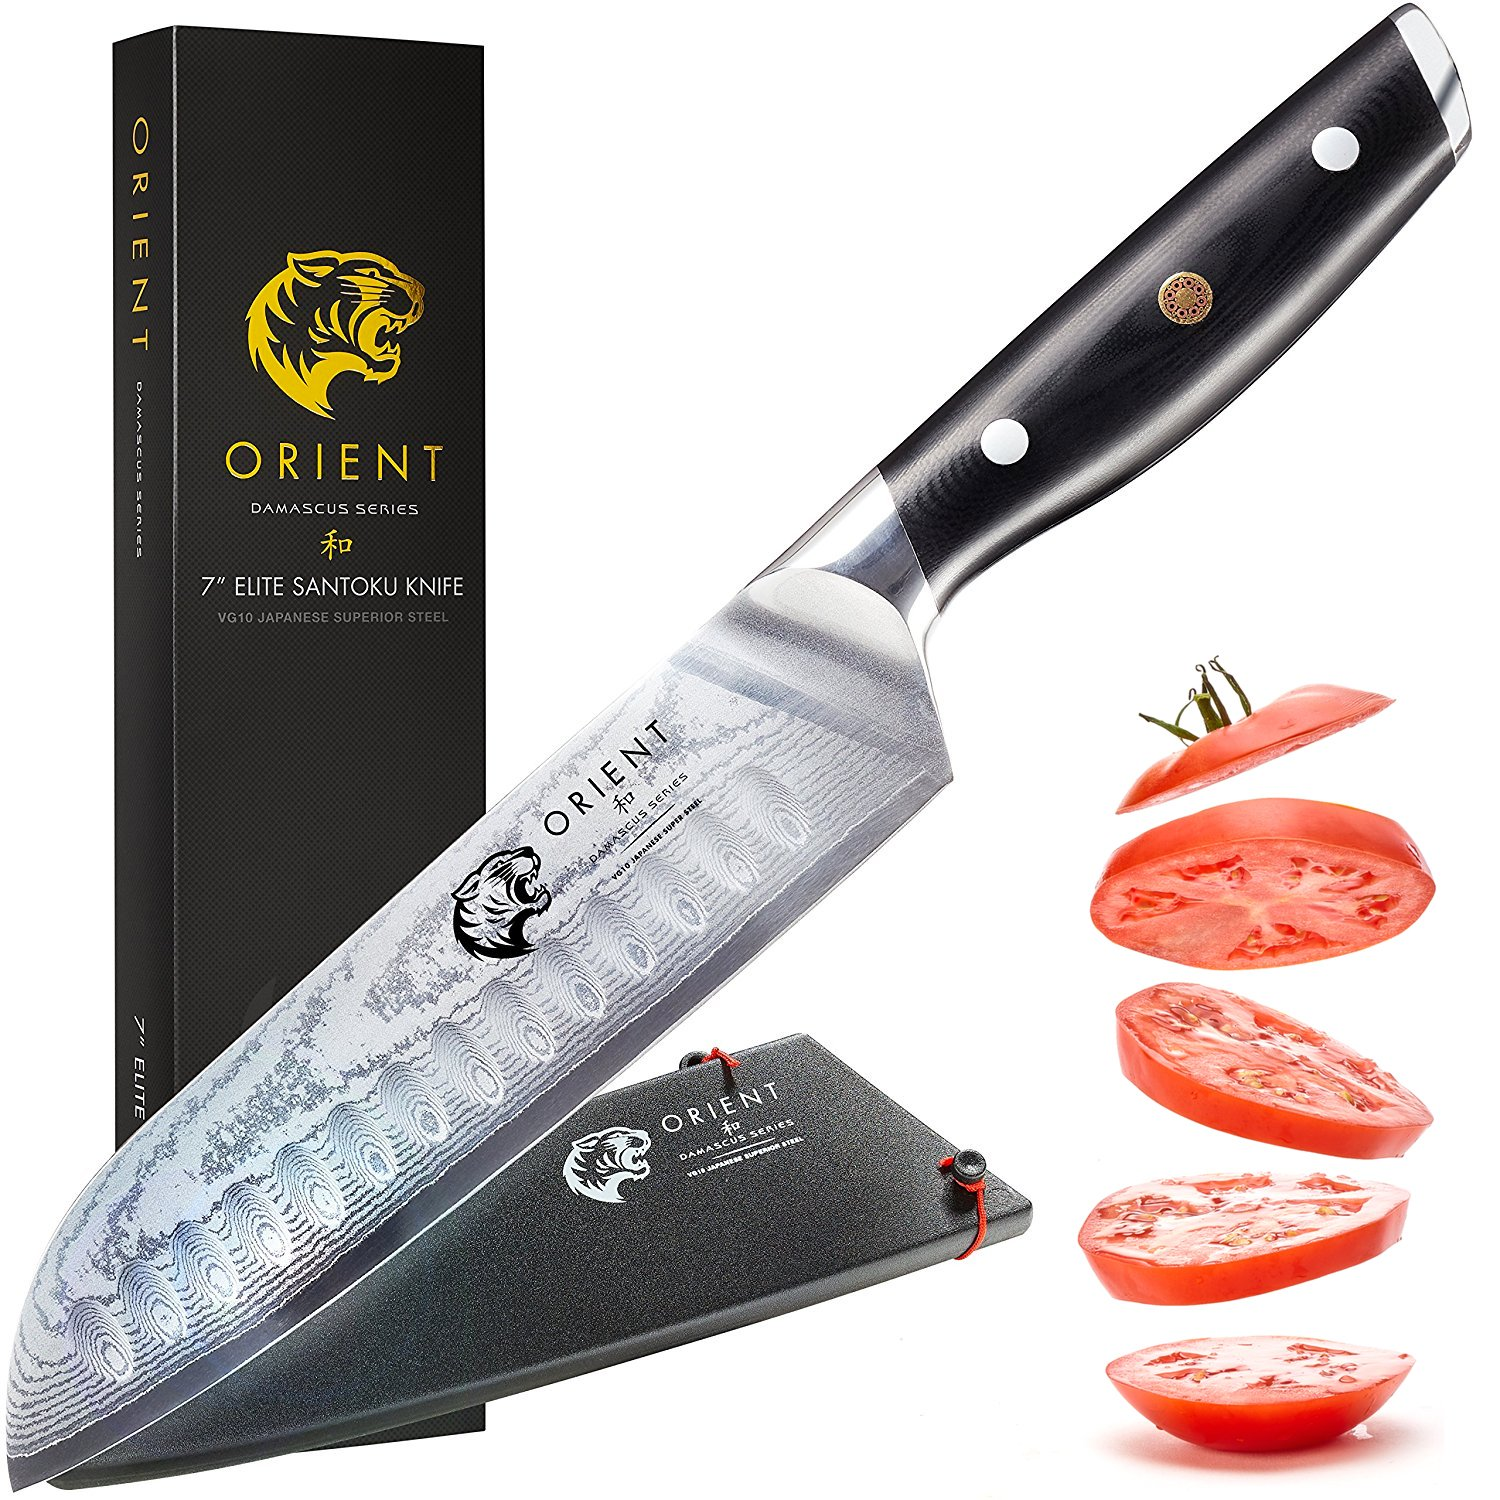 Orient Santoku Knife 7 inch Japanese Steel Damascus Blade – VG10 67 Layer Professional Chef's Knives With Gift Box and Sheath, Ultra Sharp, Best Kitchen Steel Knife with Cleaning Cloth by ORIENT